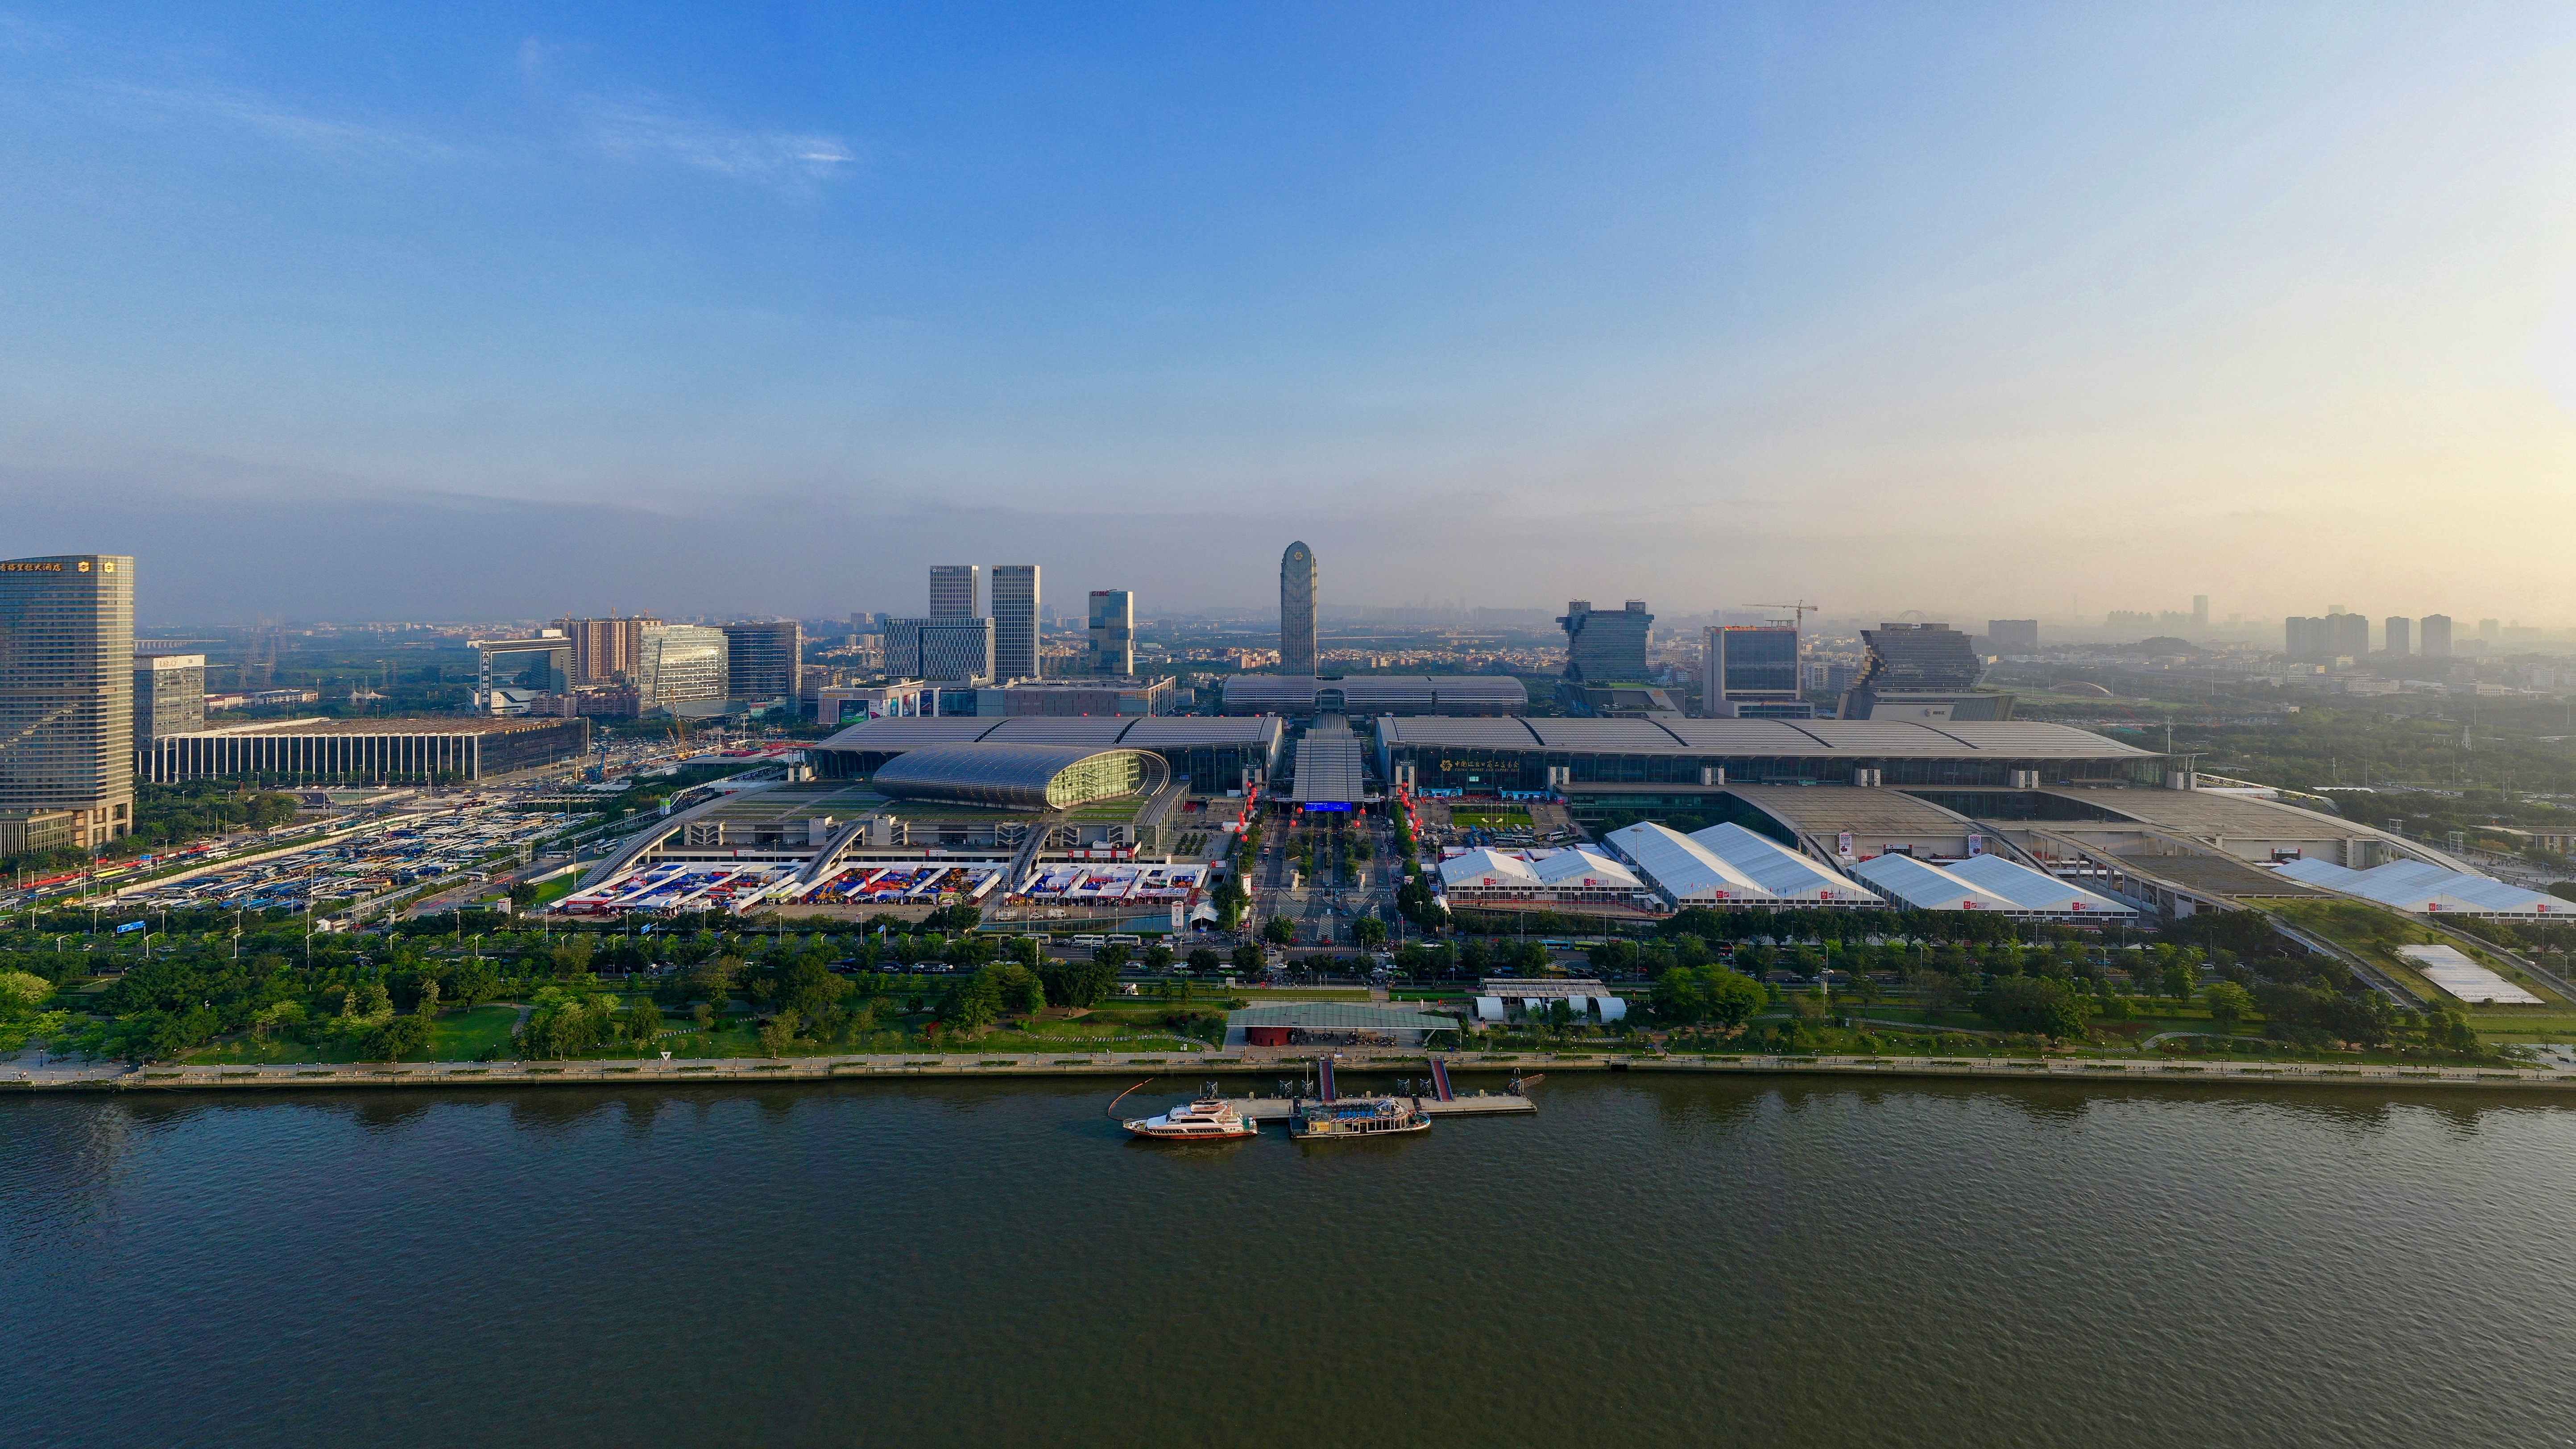 Canton Fair featured in Africa PORTS & SHIPS maritime news